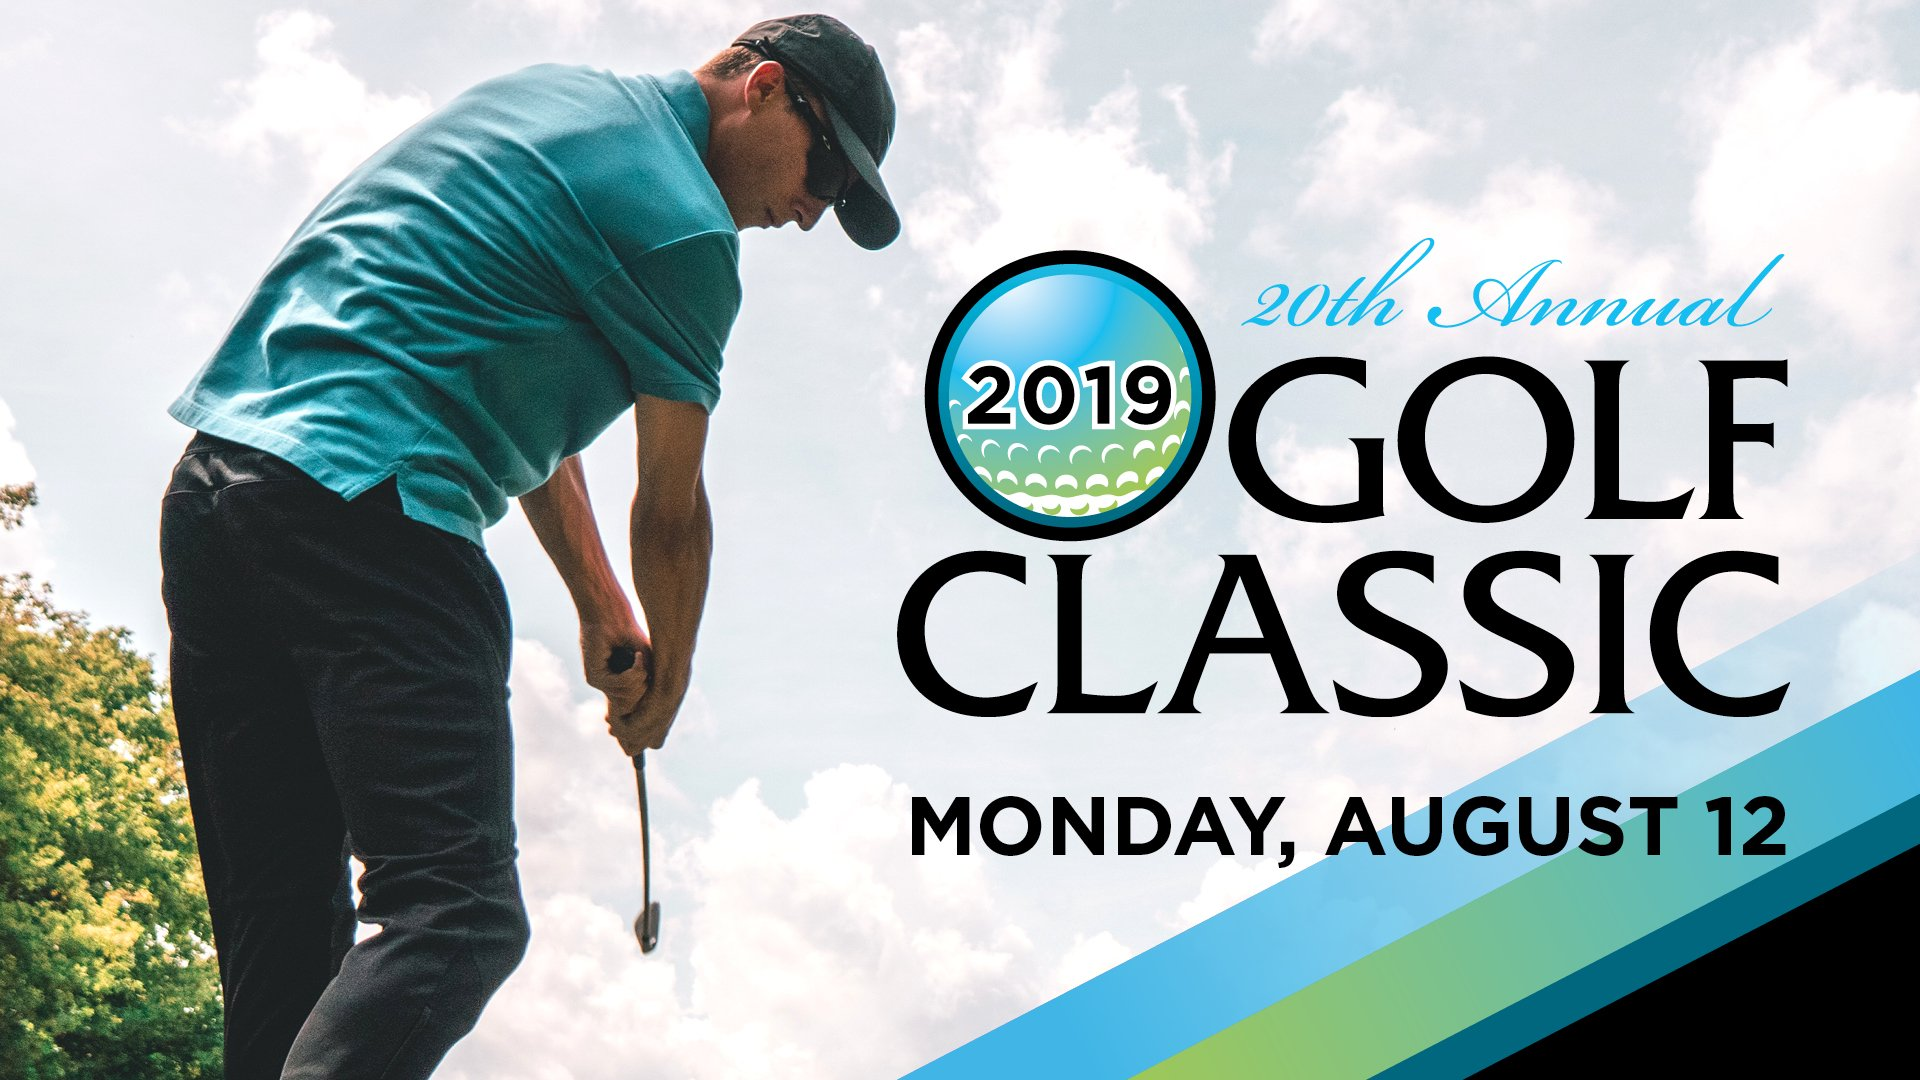 20th Annual Golf Classic on Monday August 12 2019